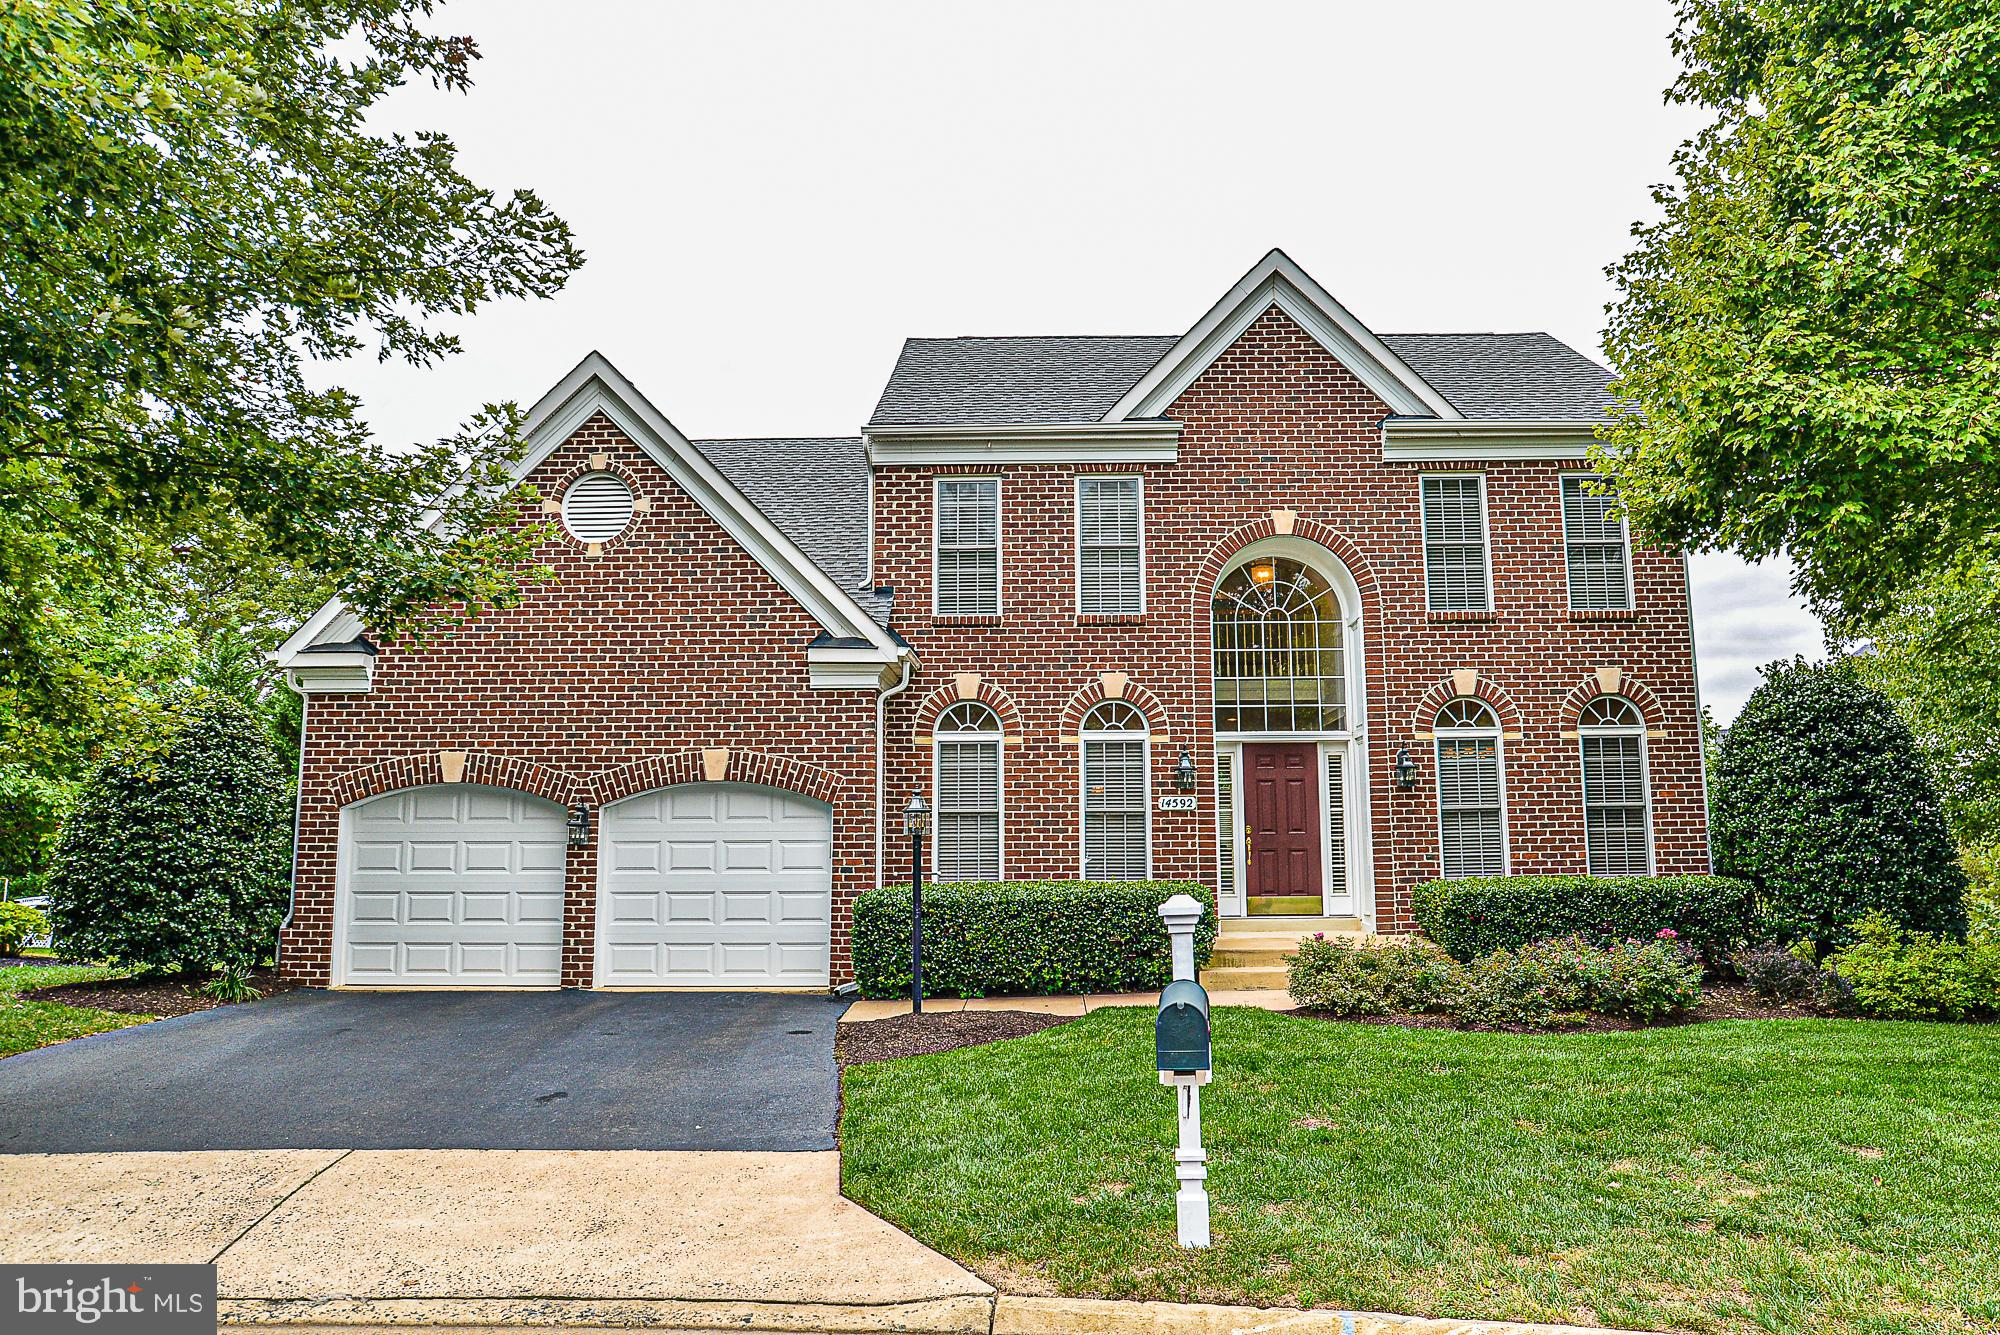 This Home is a Must-See Model-Like Move-in Ready Main Level Master Suite 4 Bedroom / 2.5 Bath in the